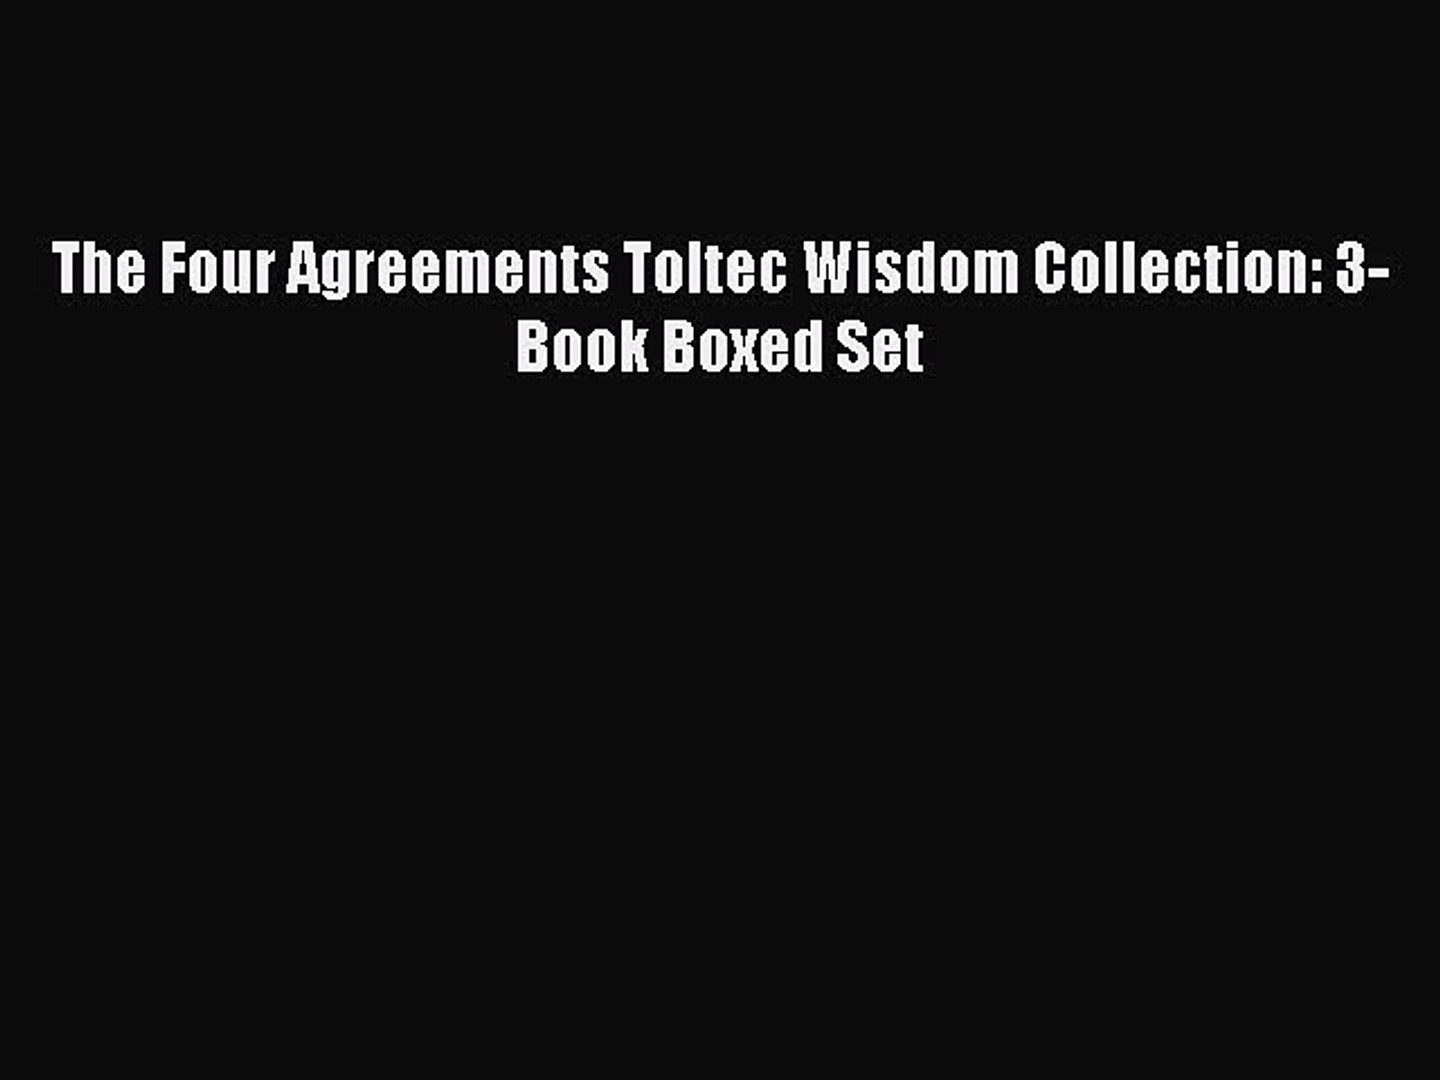 Four Agreements Book Free Download Pdf Download The Four Agreements Toltec Wisdom Collection 3 Book Boxed Set Read Online